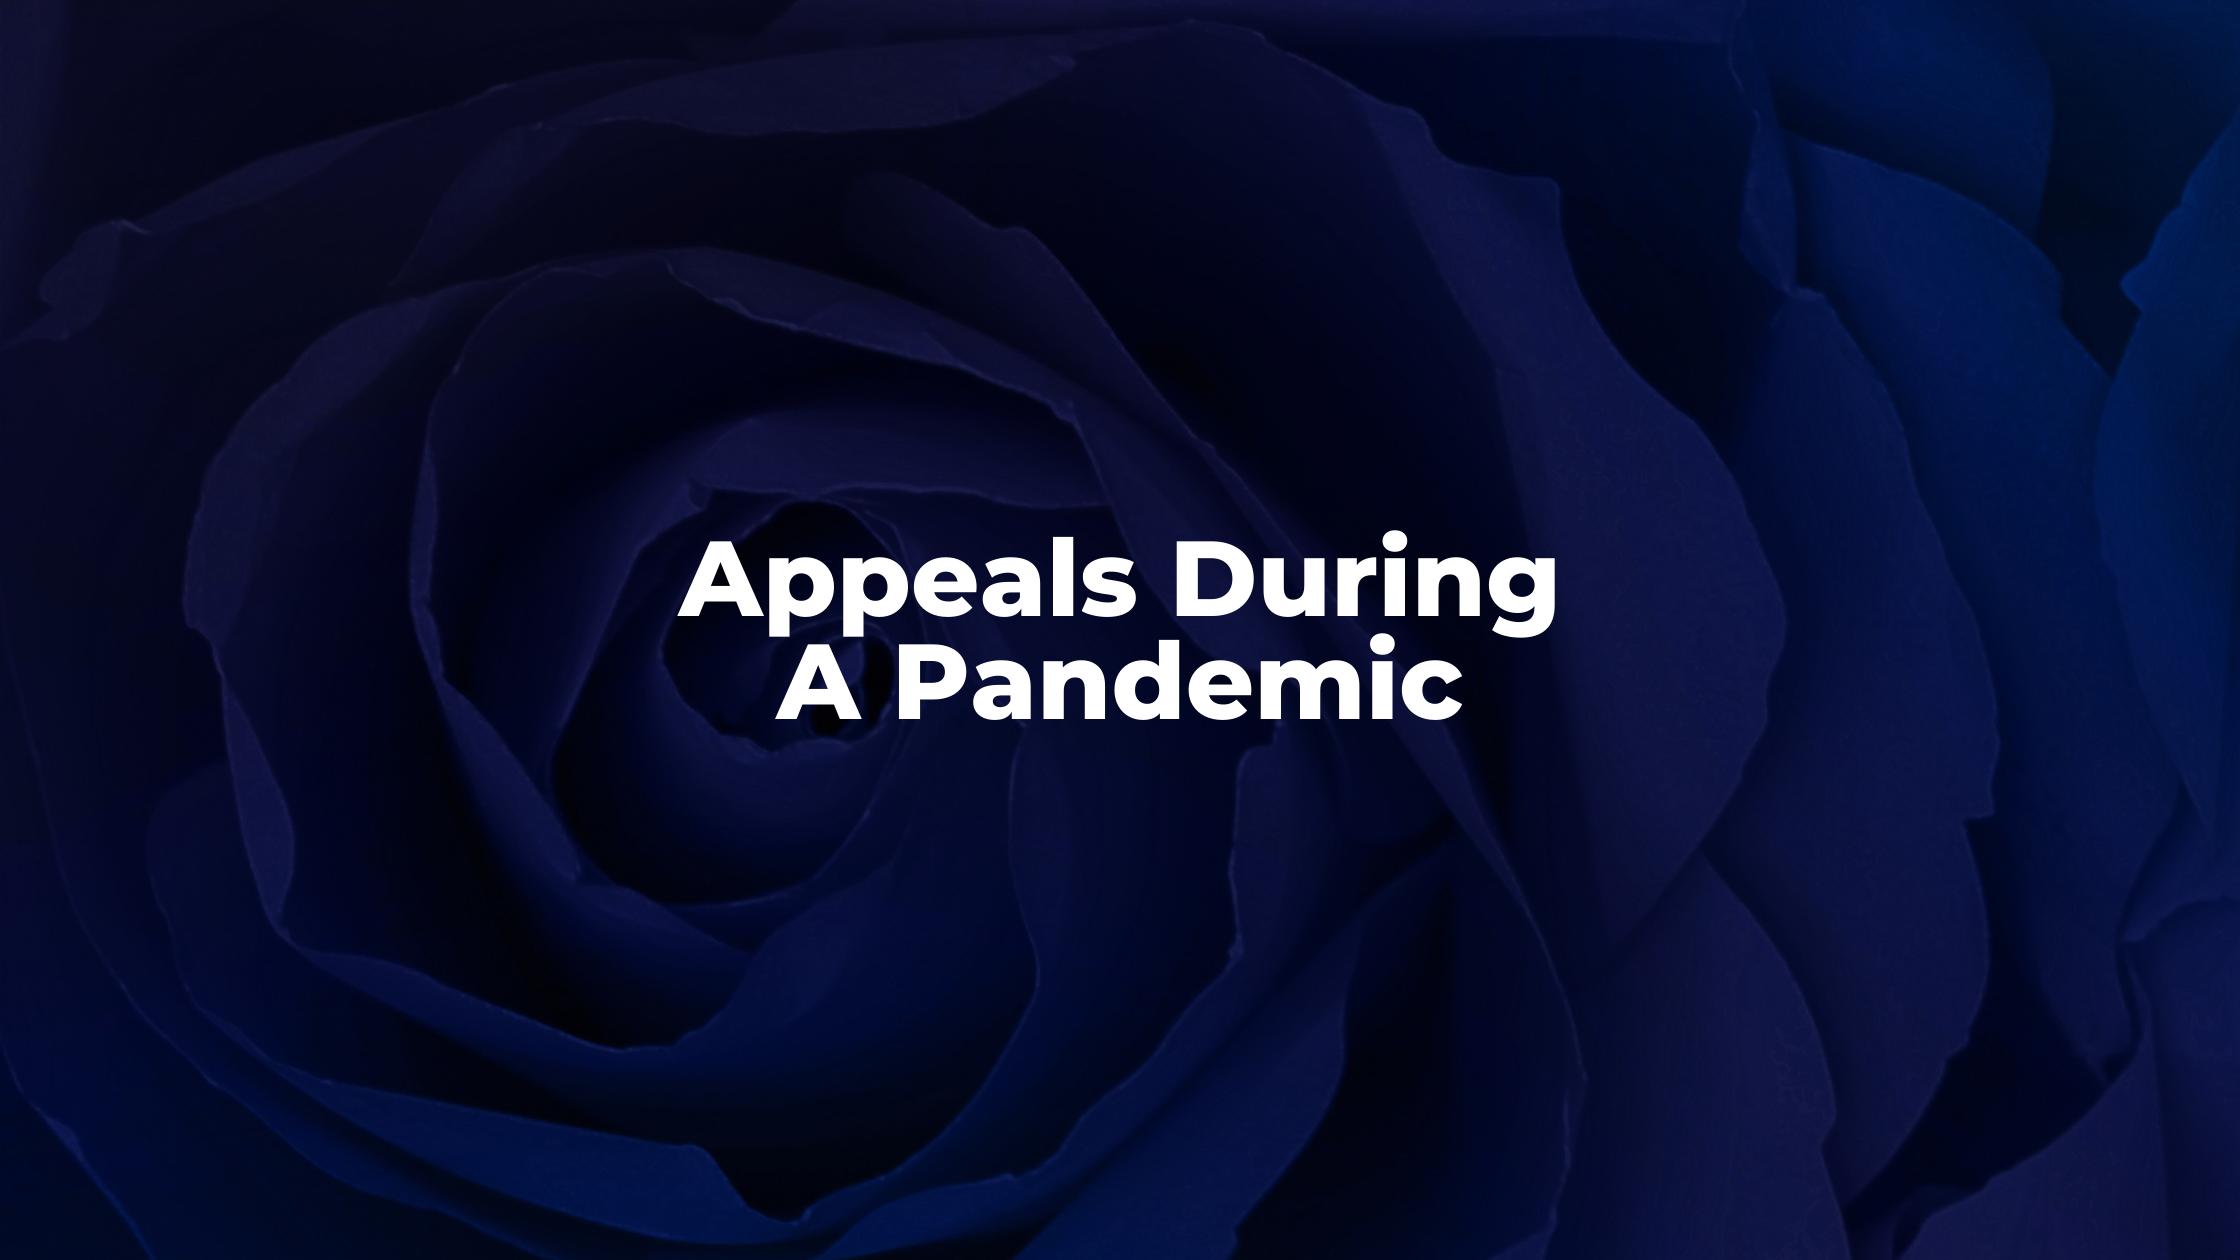 Appeals During A Pandemic